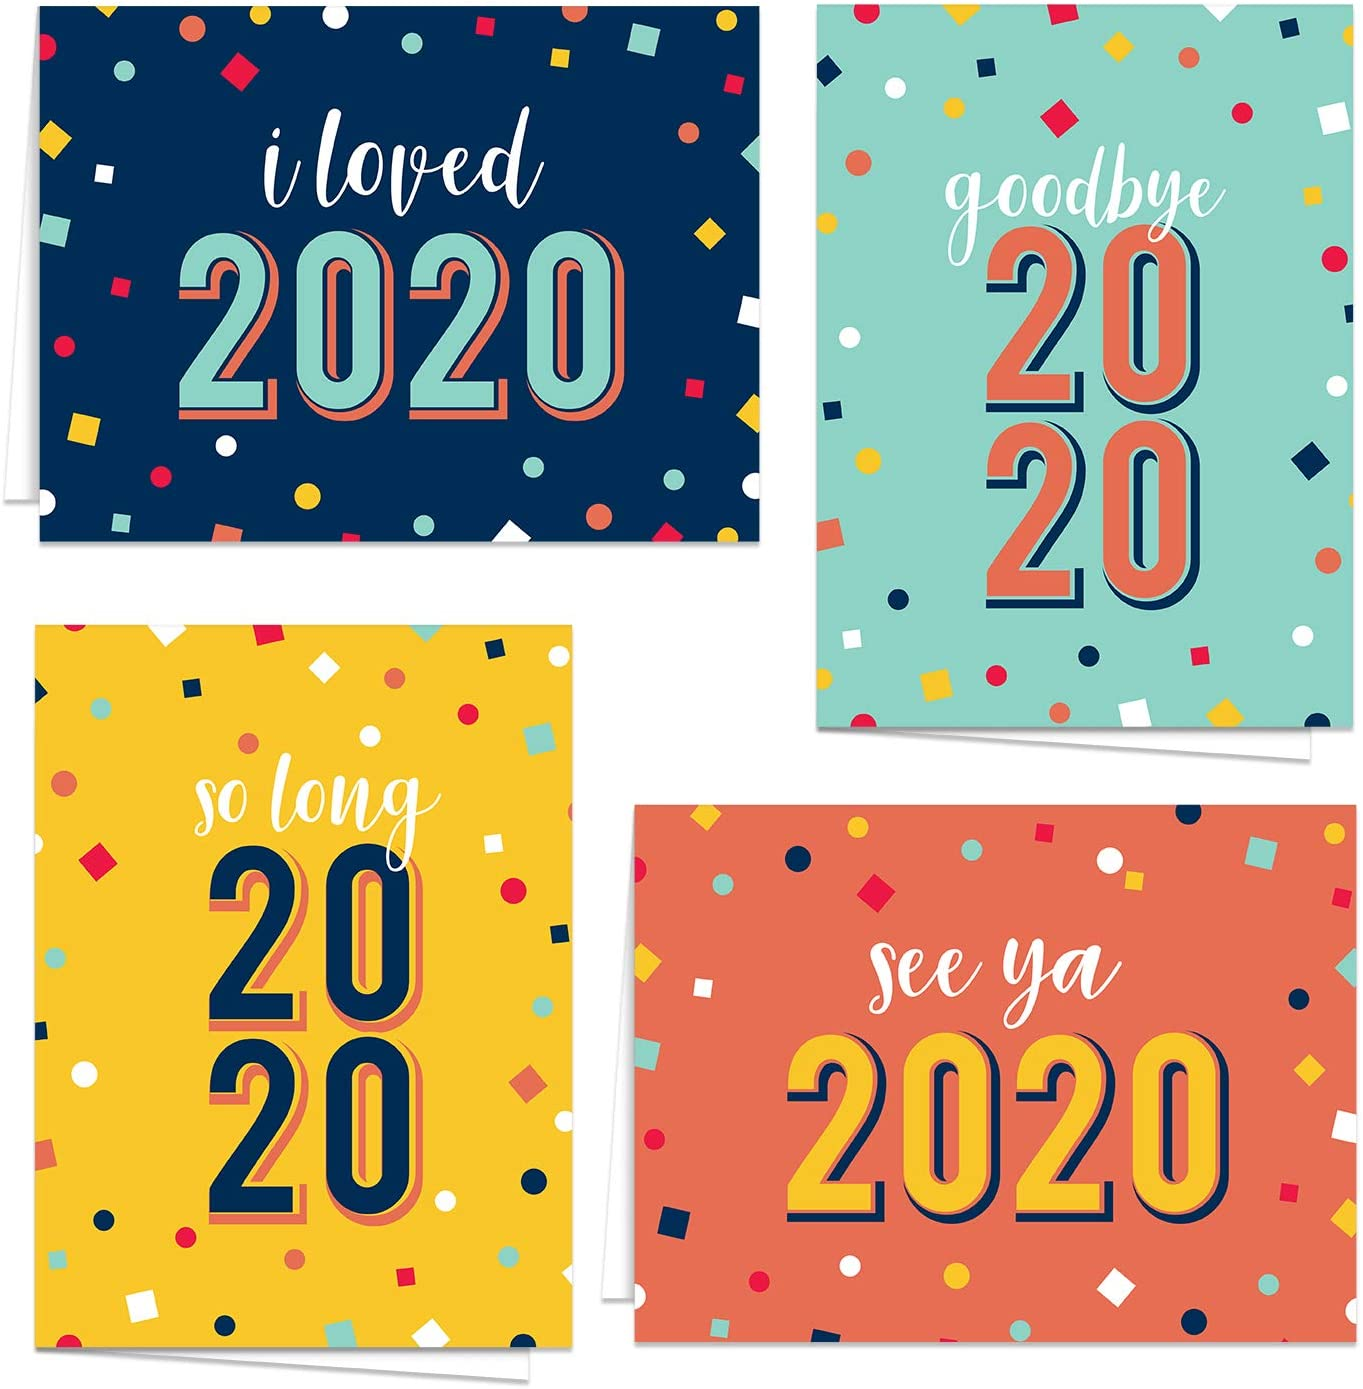 Funny Happy New Year Cards/Sarcastic New Year Greetings/Colorful Goodbye 2020 Cards